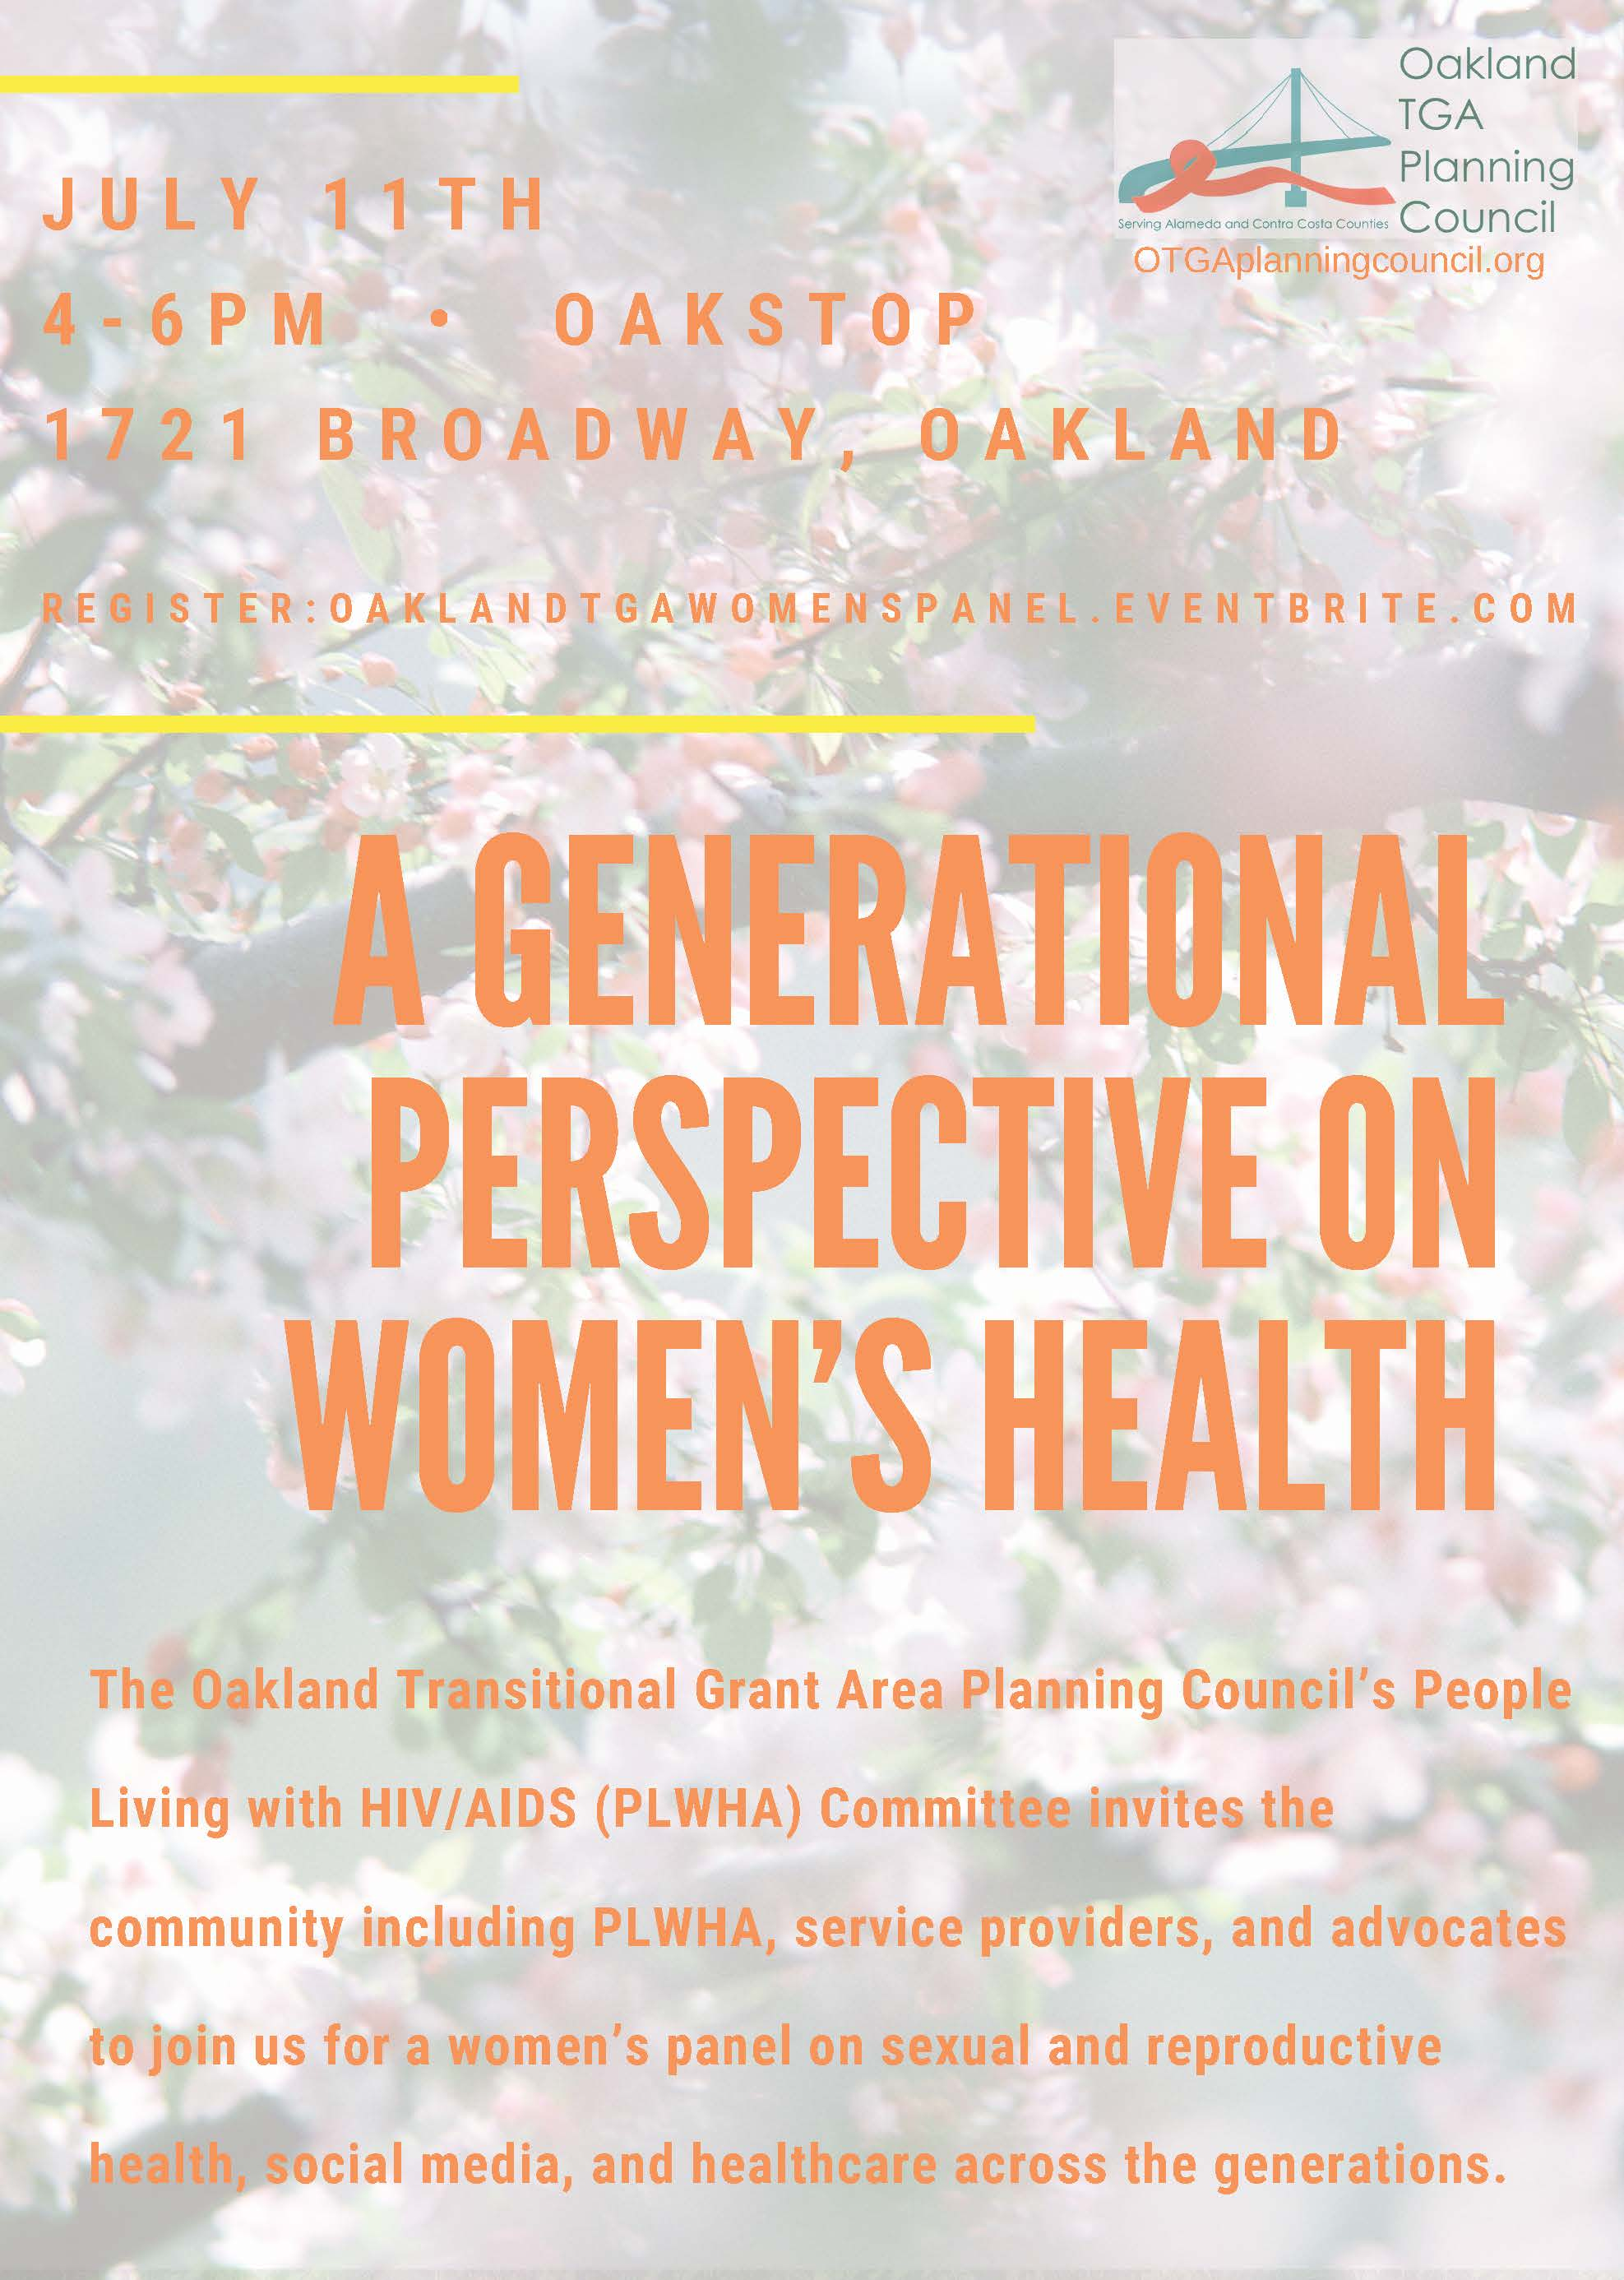 A Generational Perspective on Women's Health Flyer FINAL.jpg